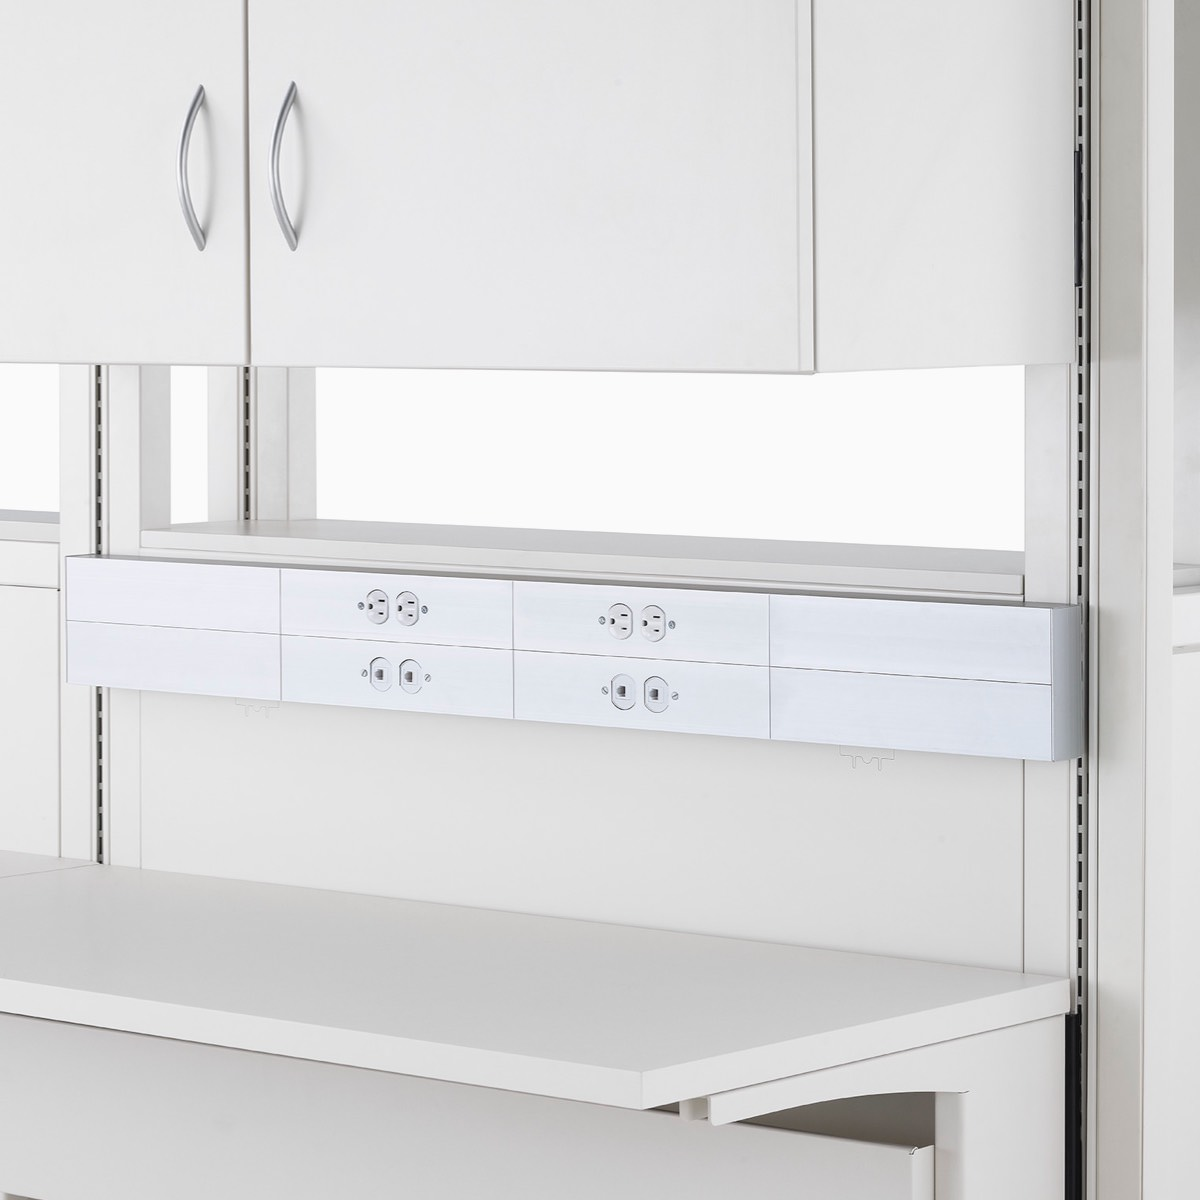 Detail of soft white Co/Struc System frame module with power and data channel access.